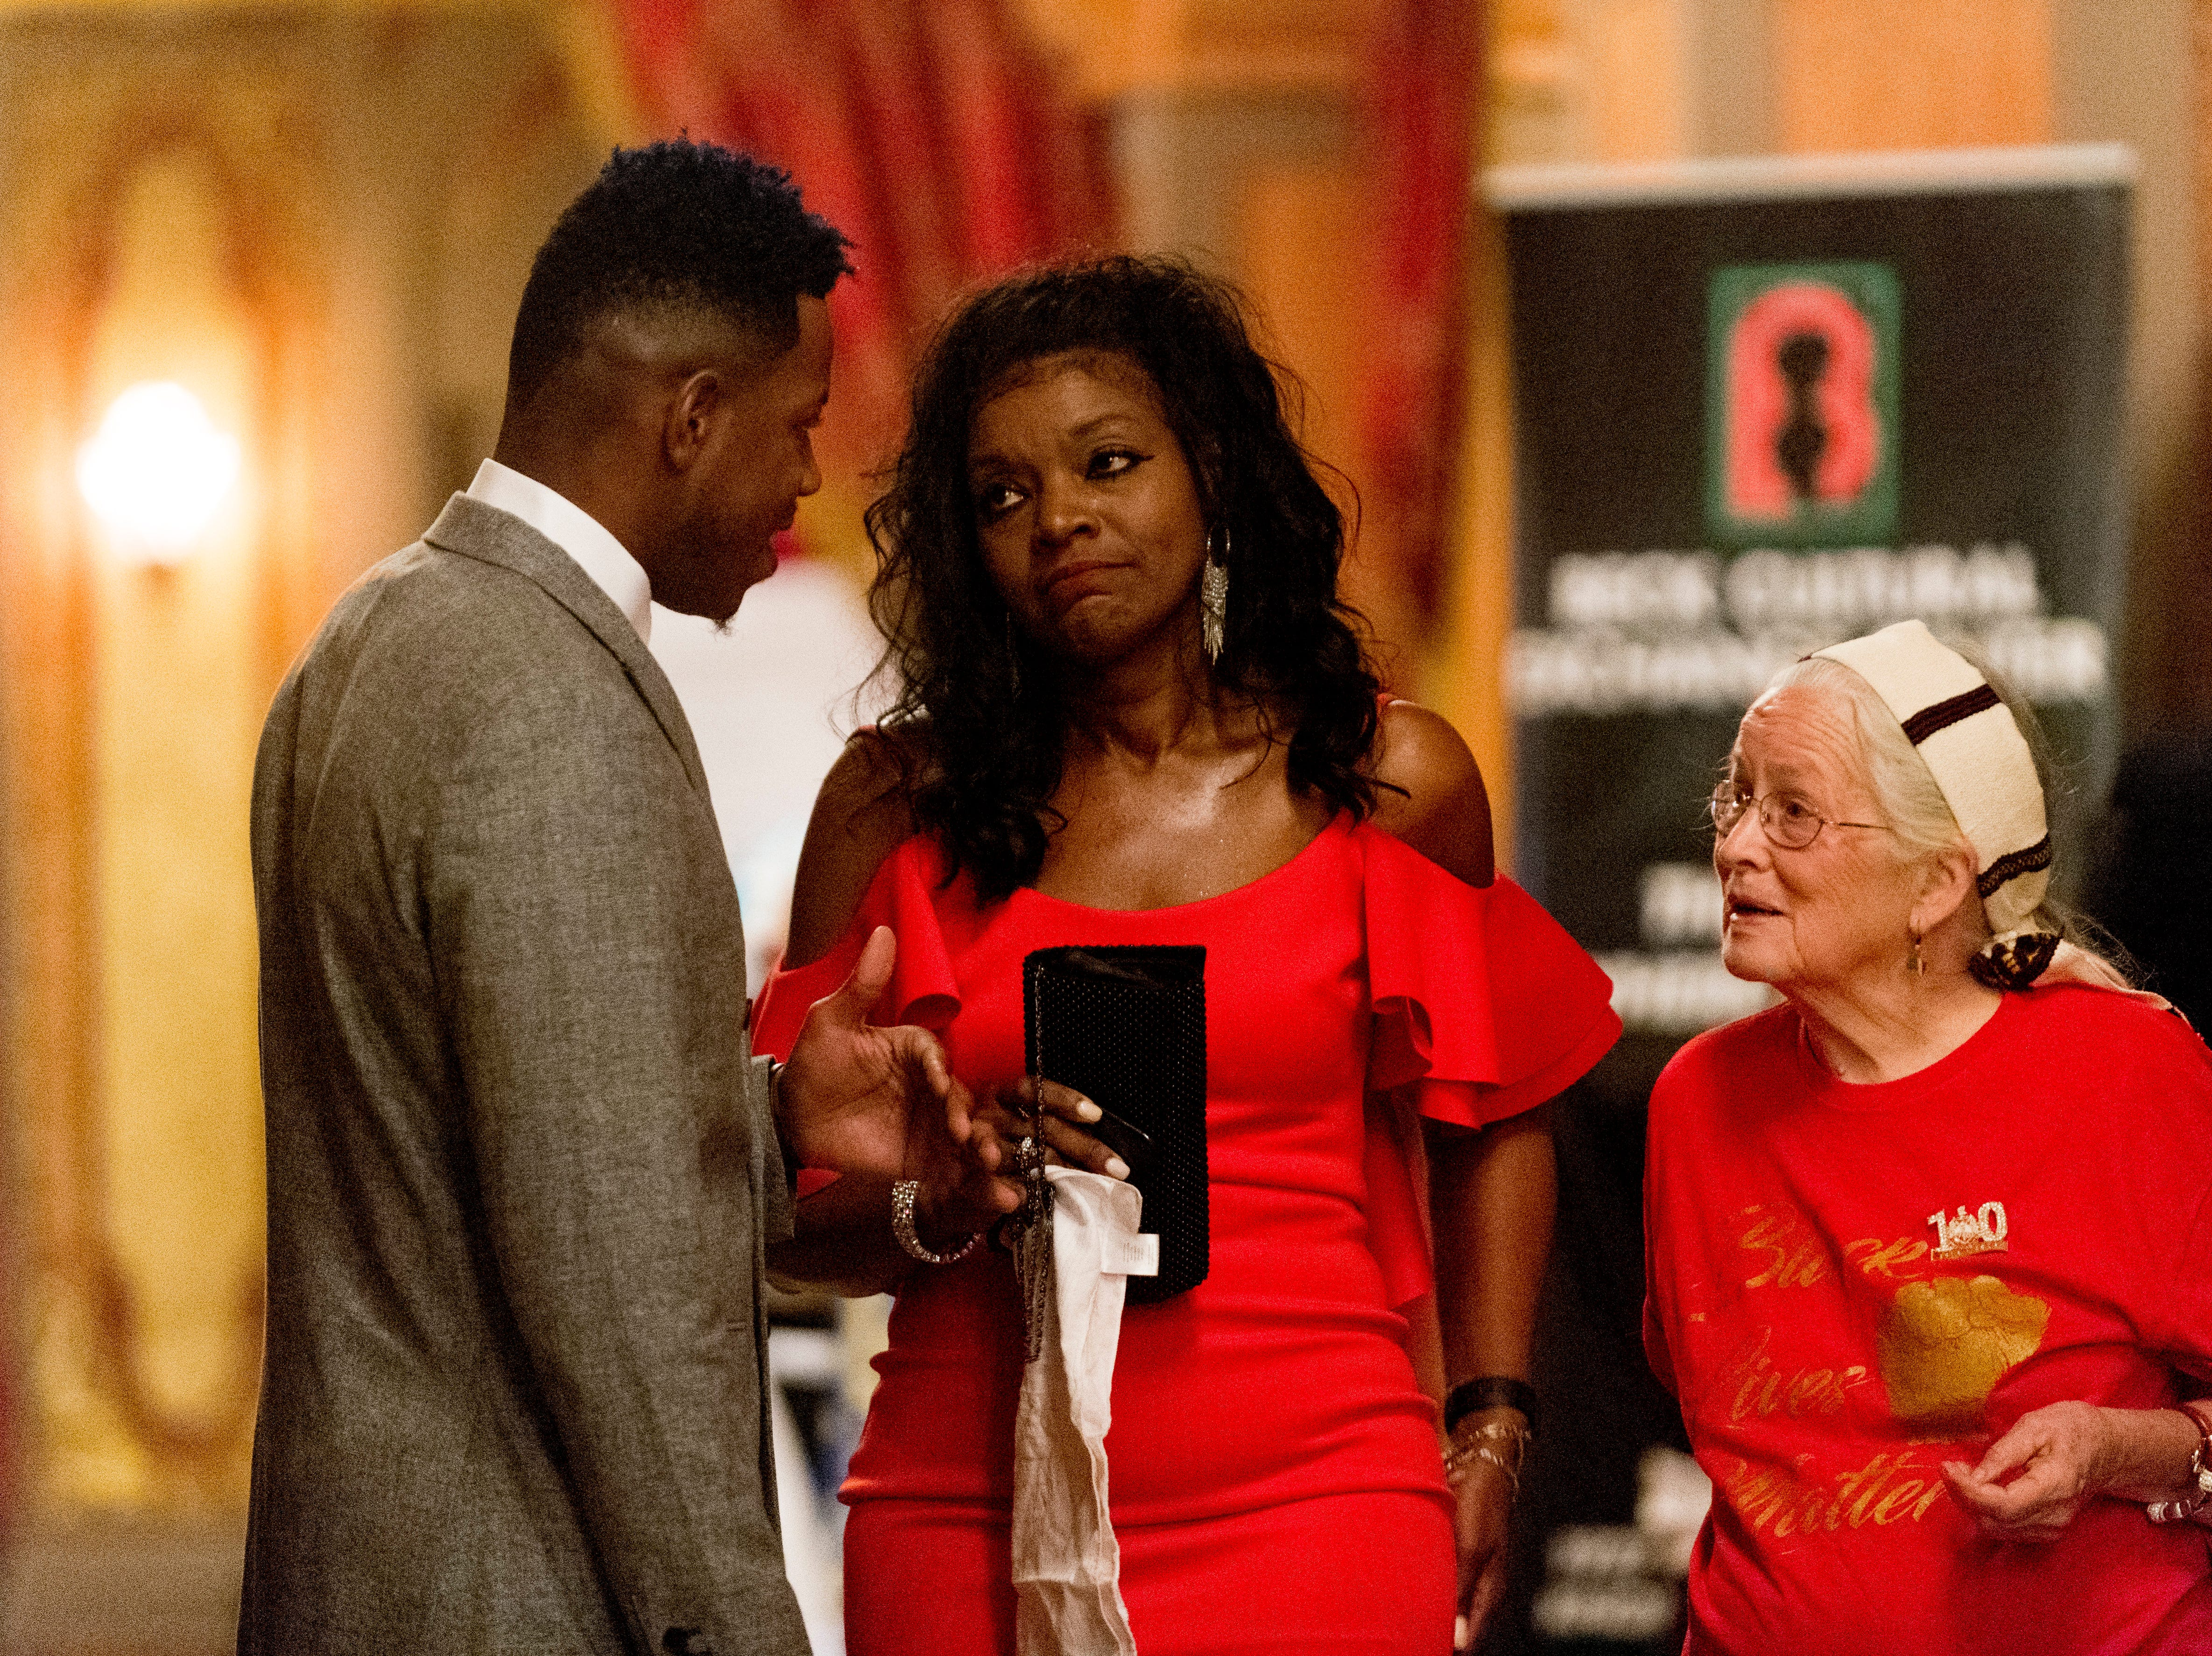 """From left, Chris Blue, Renee Kesler, President of the Beck Cultural Center, and civil rights icon Joan Trumpauer Mulholland chat at the Beck Cultural Center's """"Eighth of August"""" commemoration at the Tennessee Theatre in Knoxville, Tennessee on Wednesday, August 8, 2018. Filmmaker Loki Mulholland and civil rights icon Joan Trumpauer Mulholland were special guests at the debut screening of Black, White & U.S."""